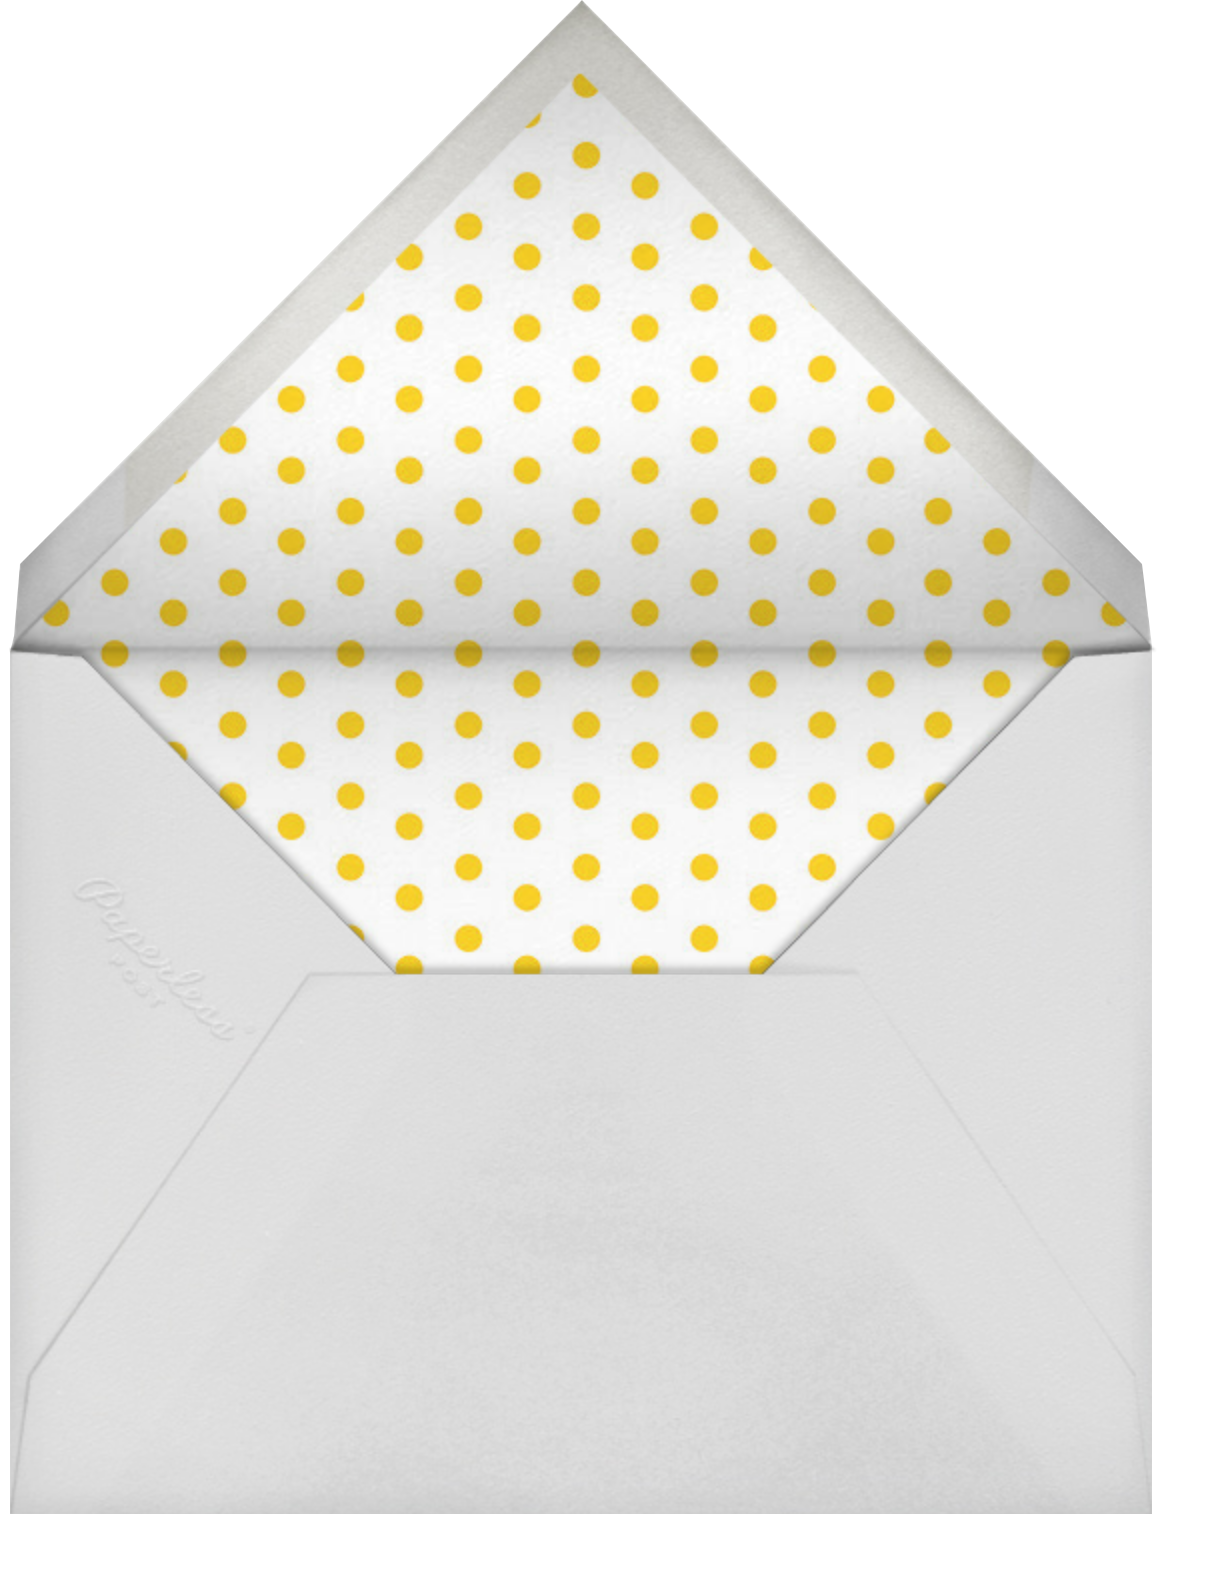 Carnaby (Tall) - Multi - Paperless Post - Adult birthday - envelope back